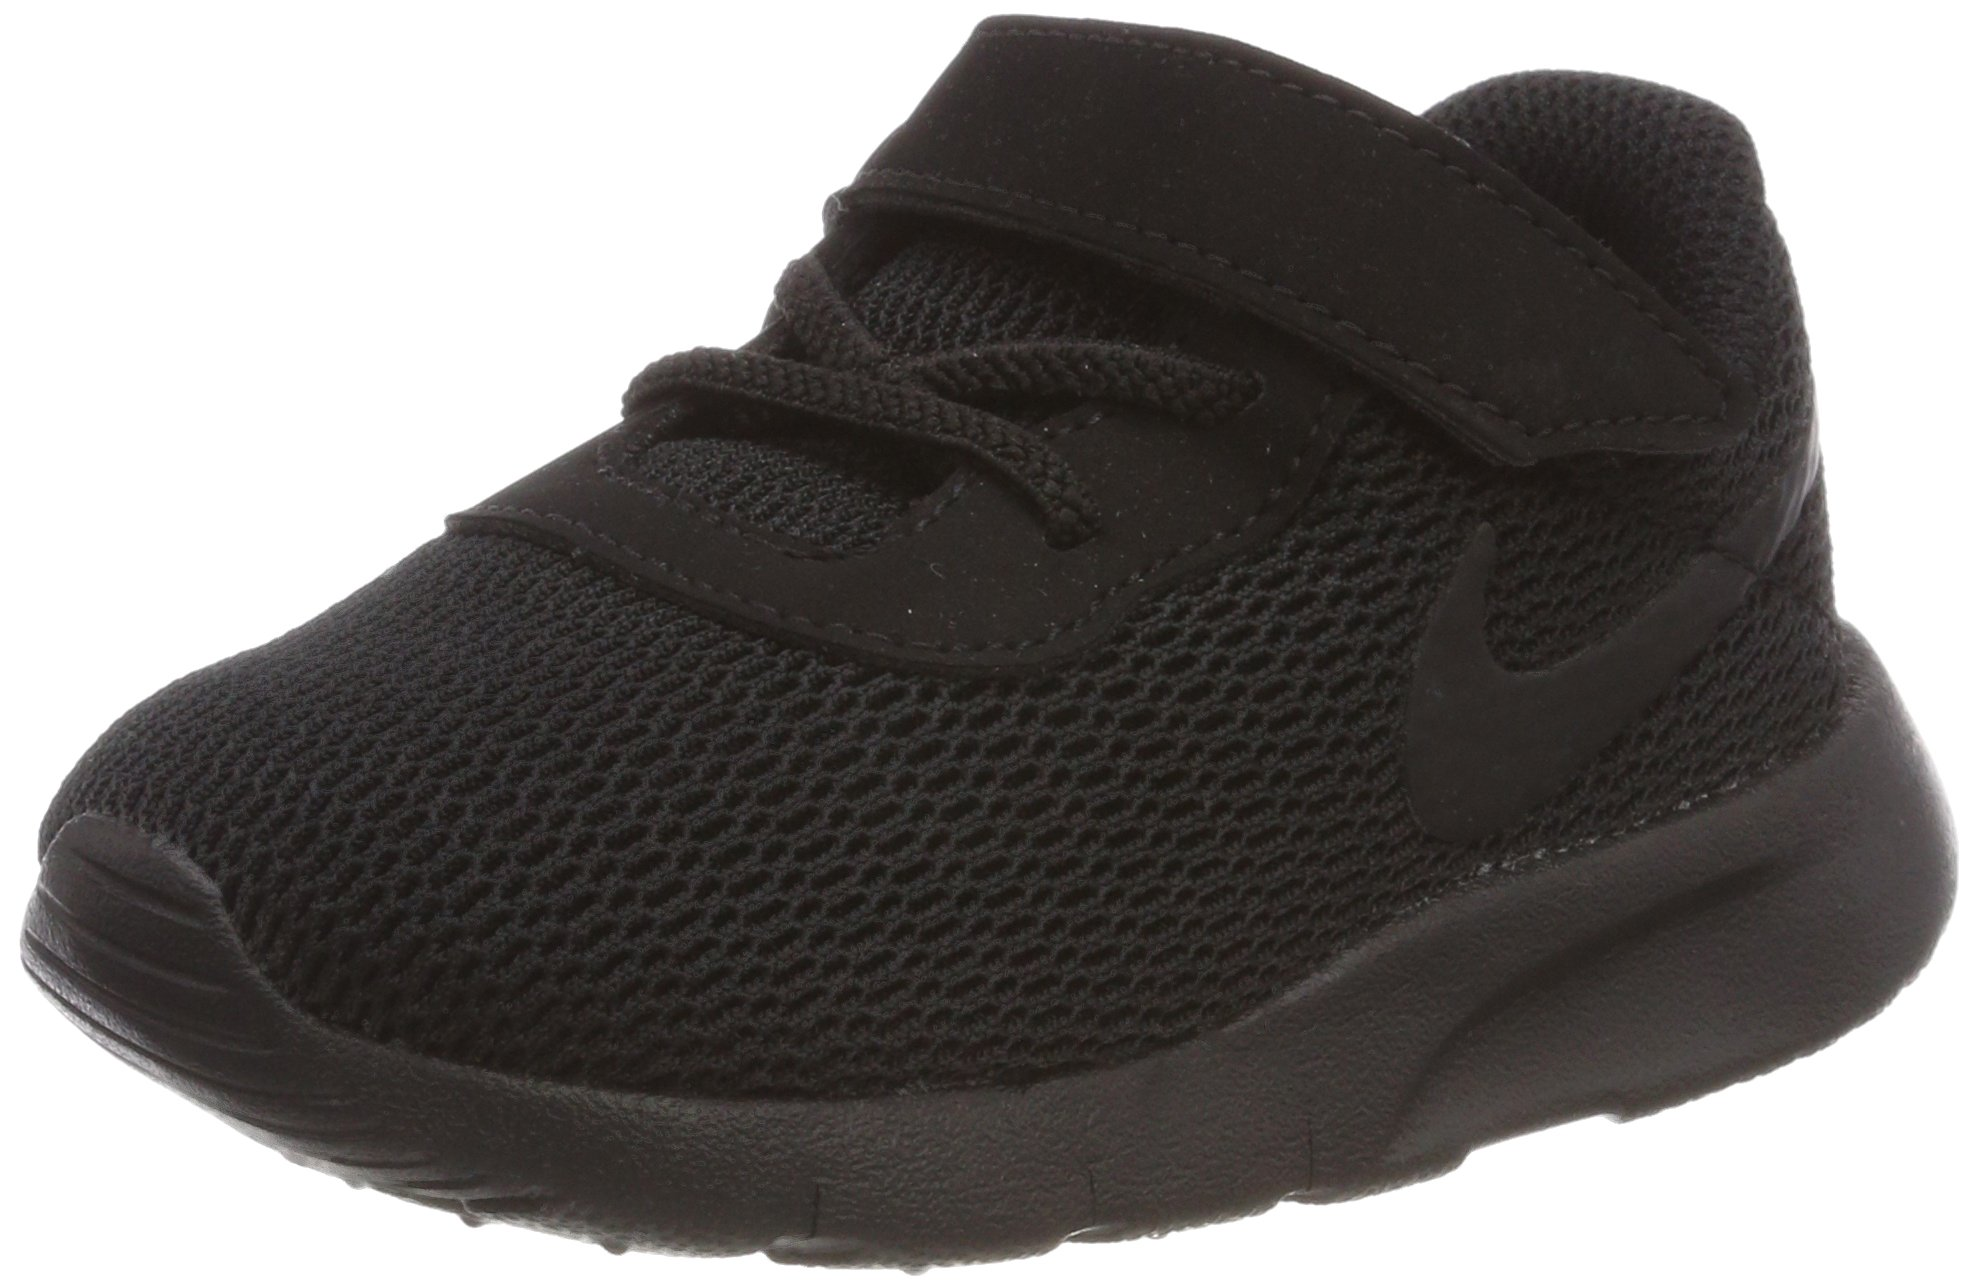 NIKE Toddlers Tanjun (TDV) Black/Black Running Shoe